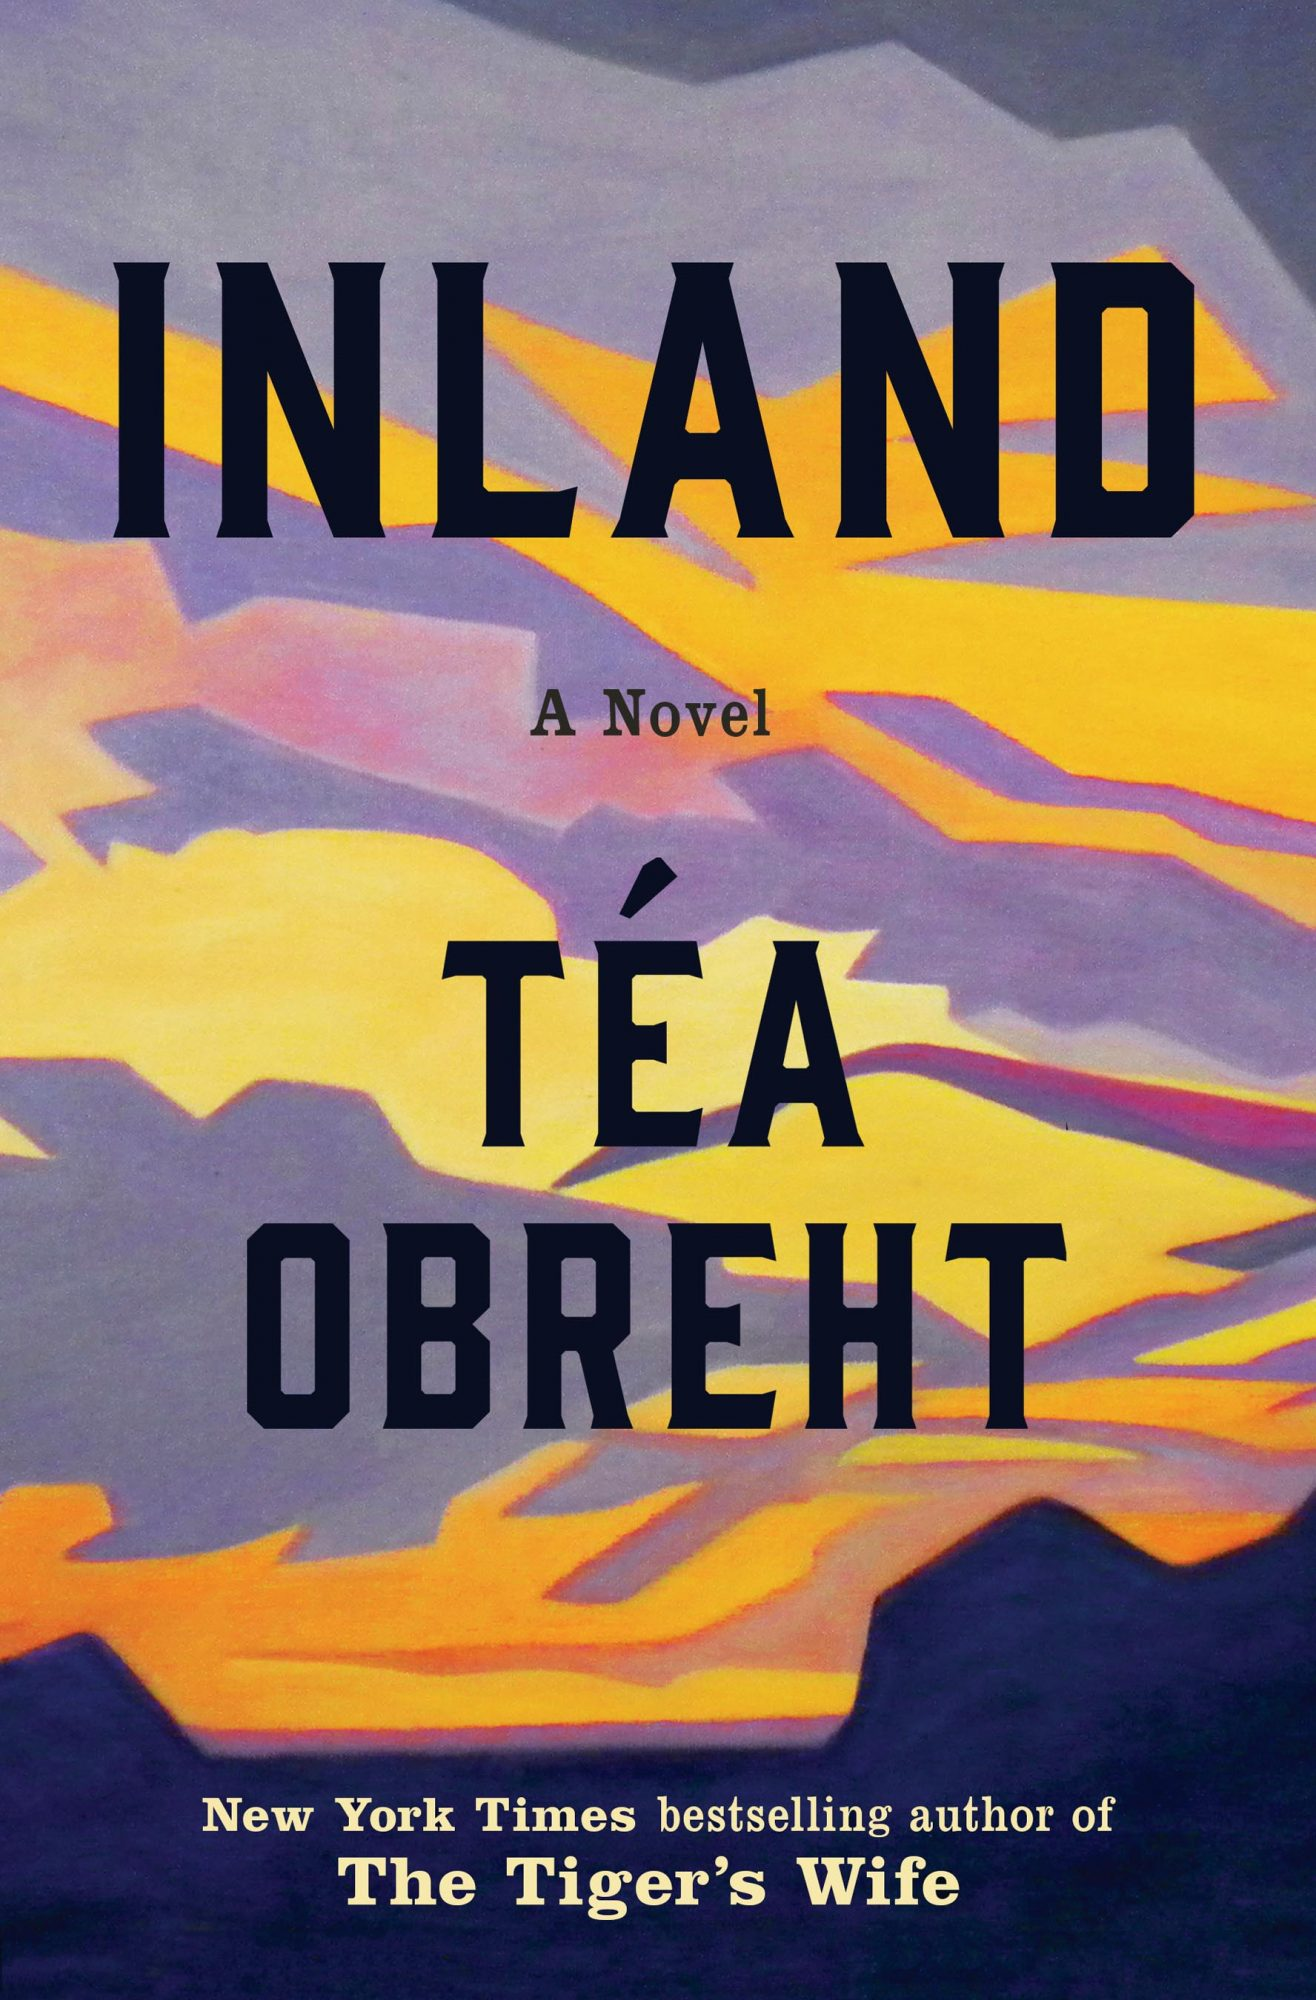 Inland (2019)Author: Téa Obreht